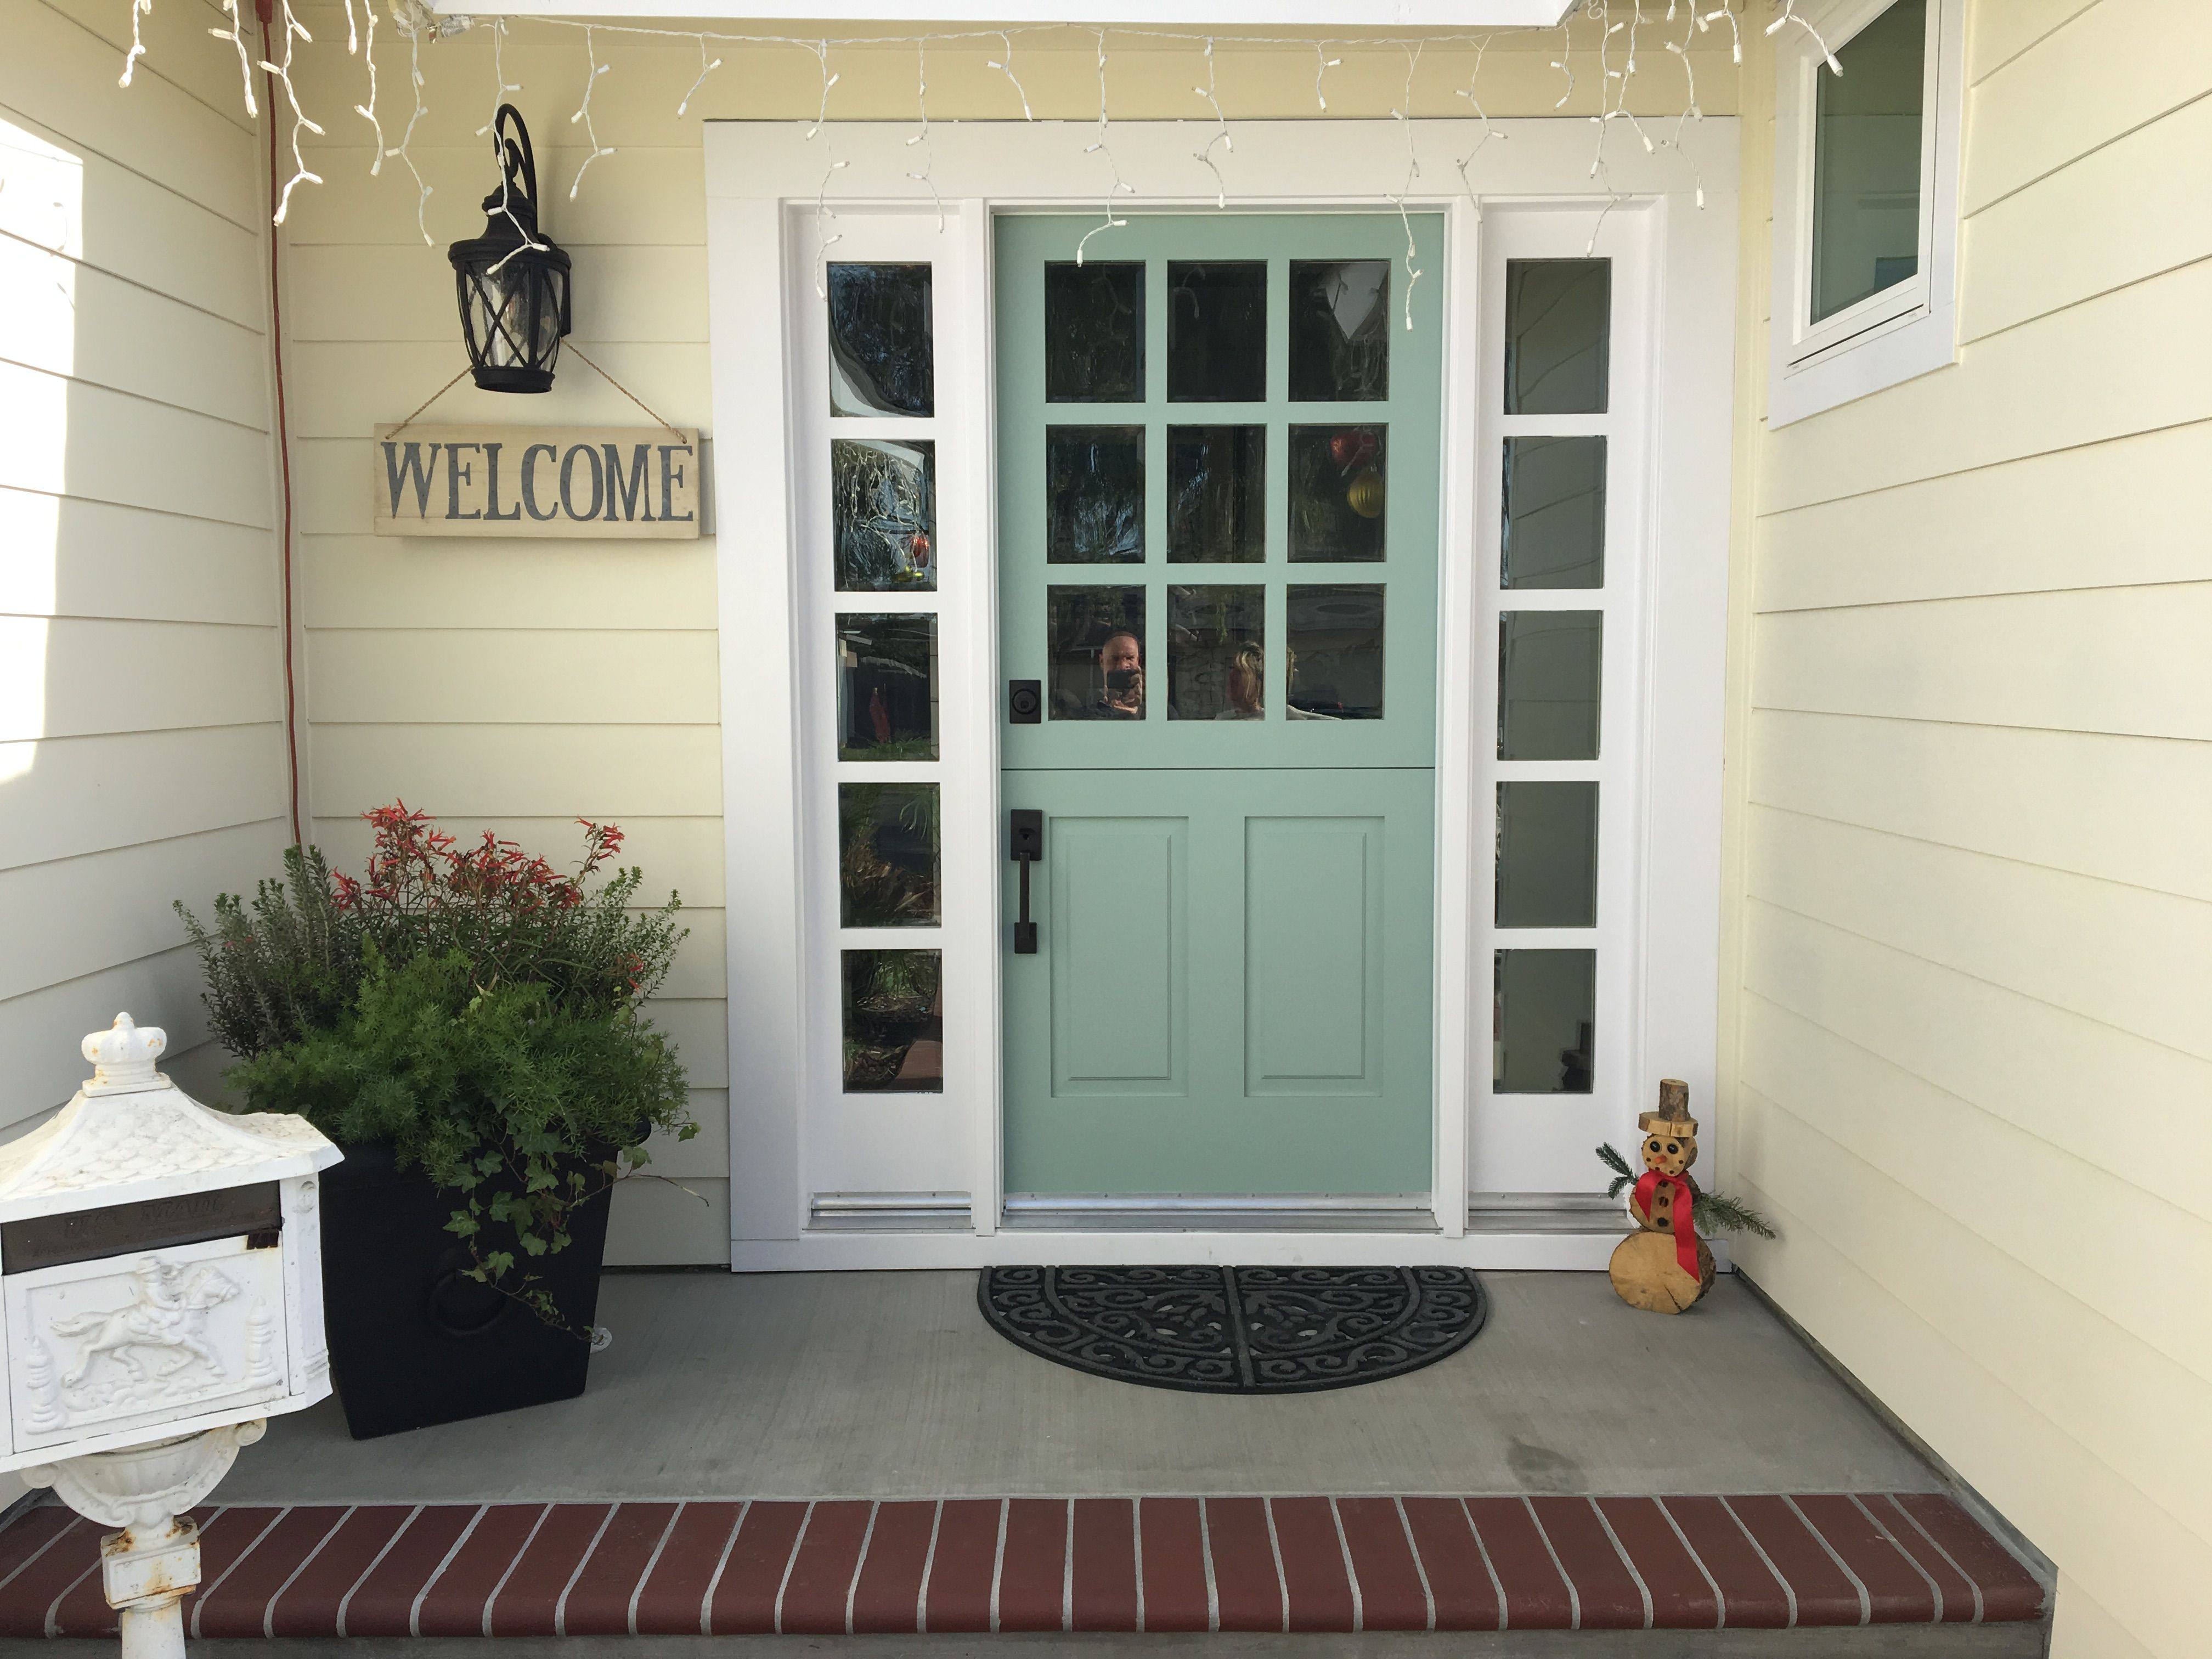 Door Benjamin Moore Wythe Blue Siding Sherwin Williams Summer White